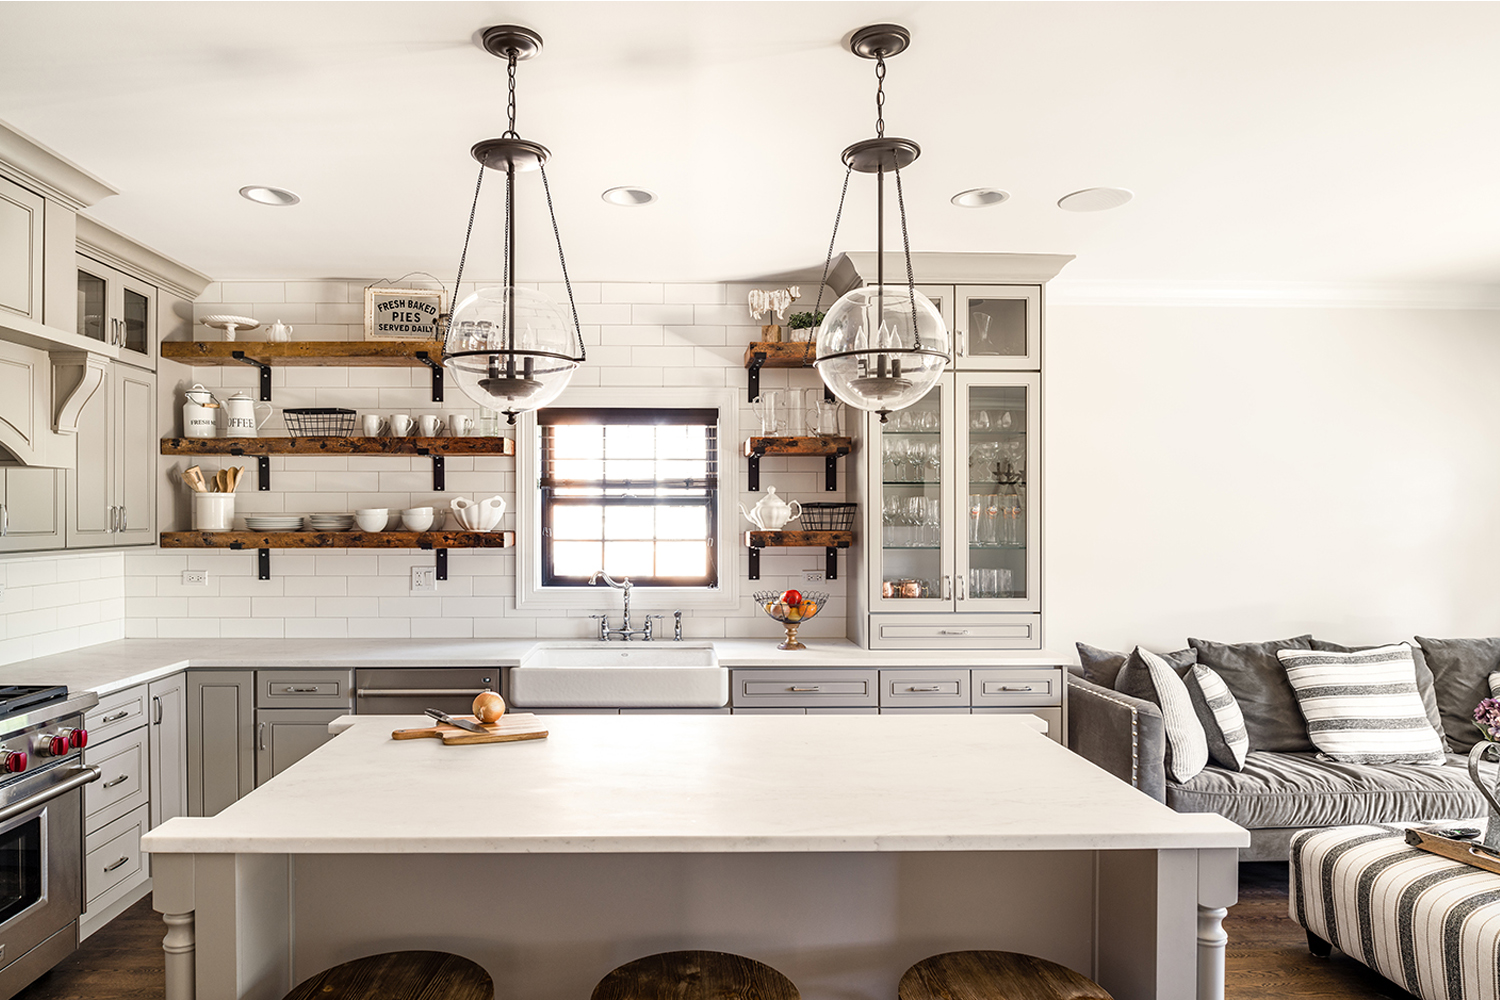 How to stage your kitchen to sell faster with Lofty Real Estate